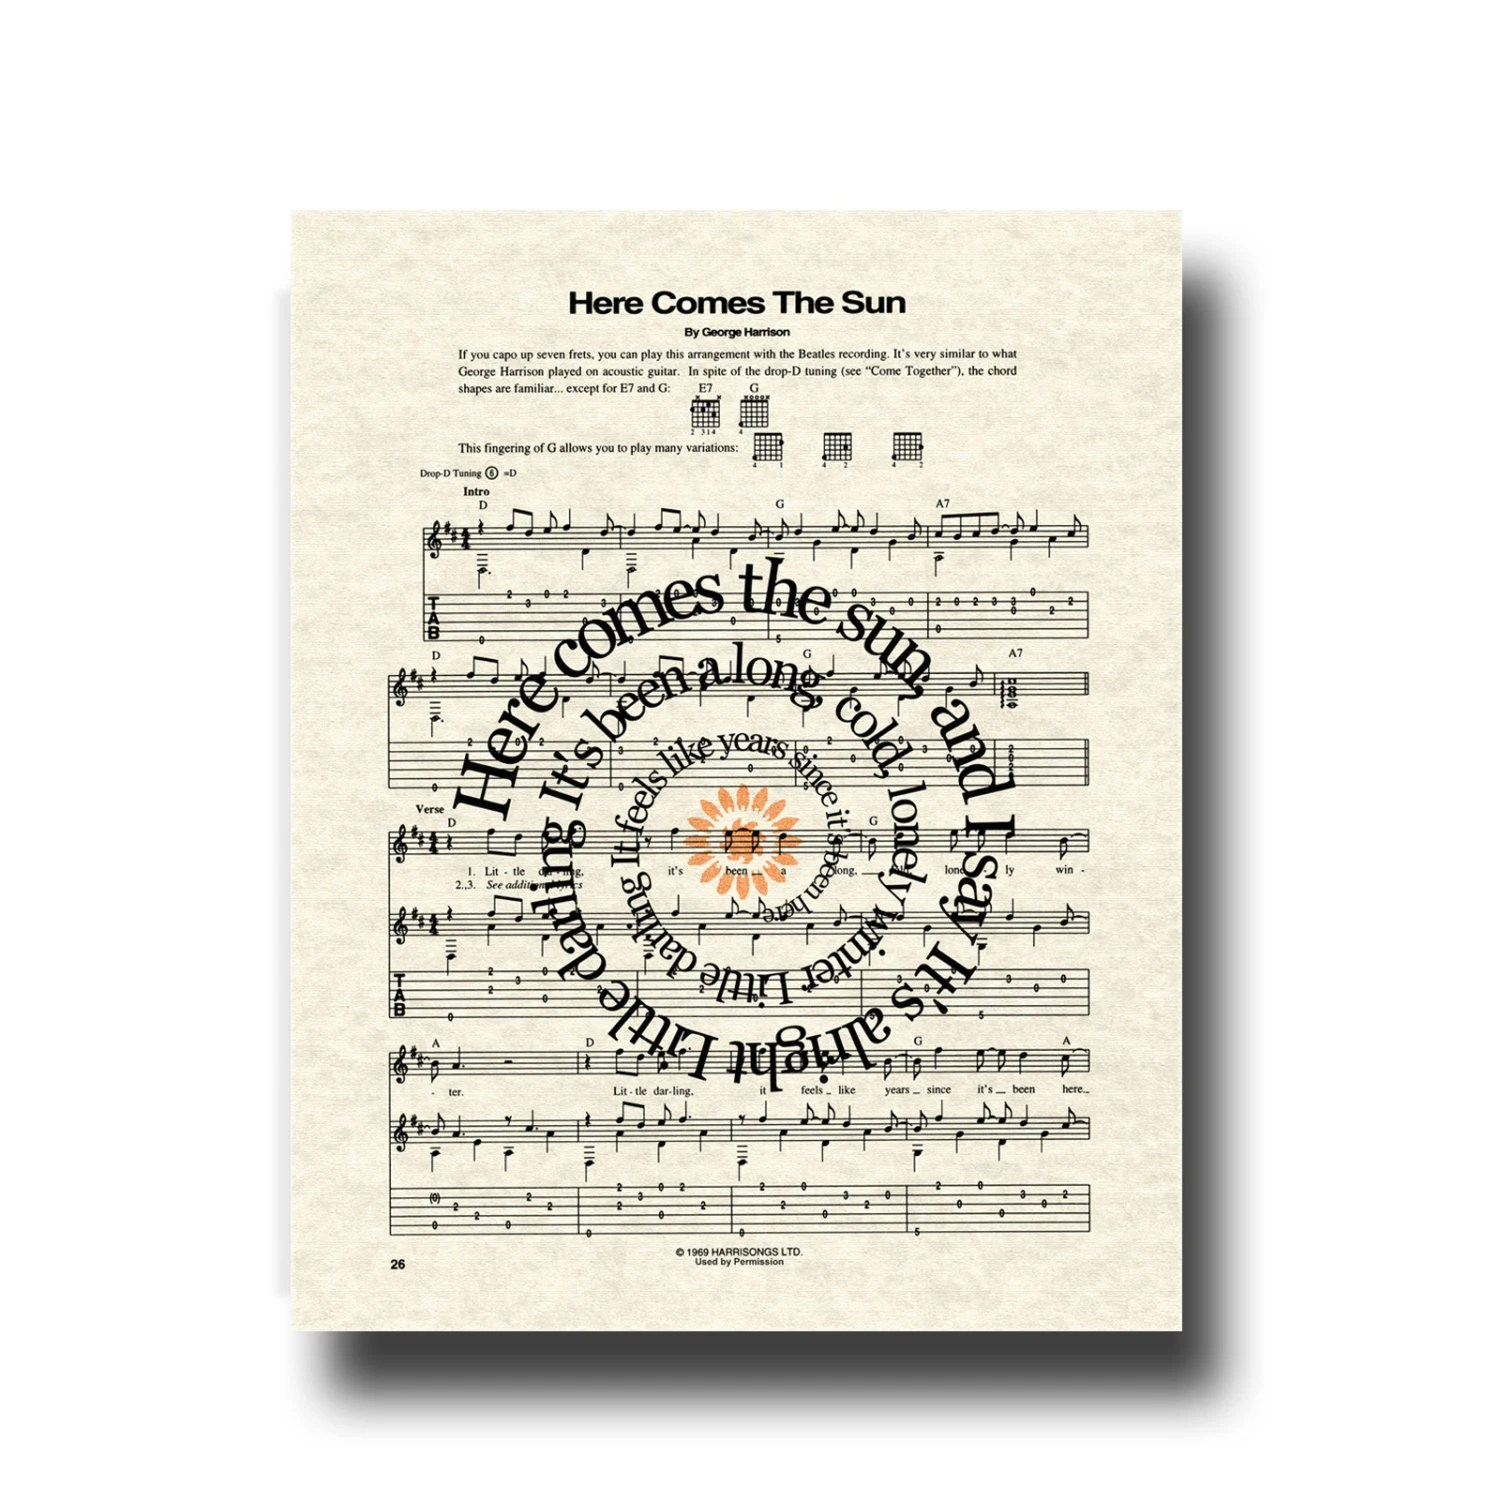 The Beatles Here Comes The Sun Song Lyric Sheet Music Art